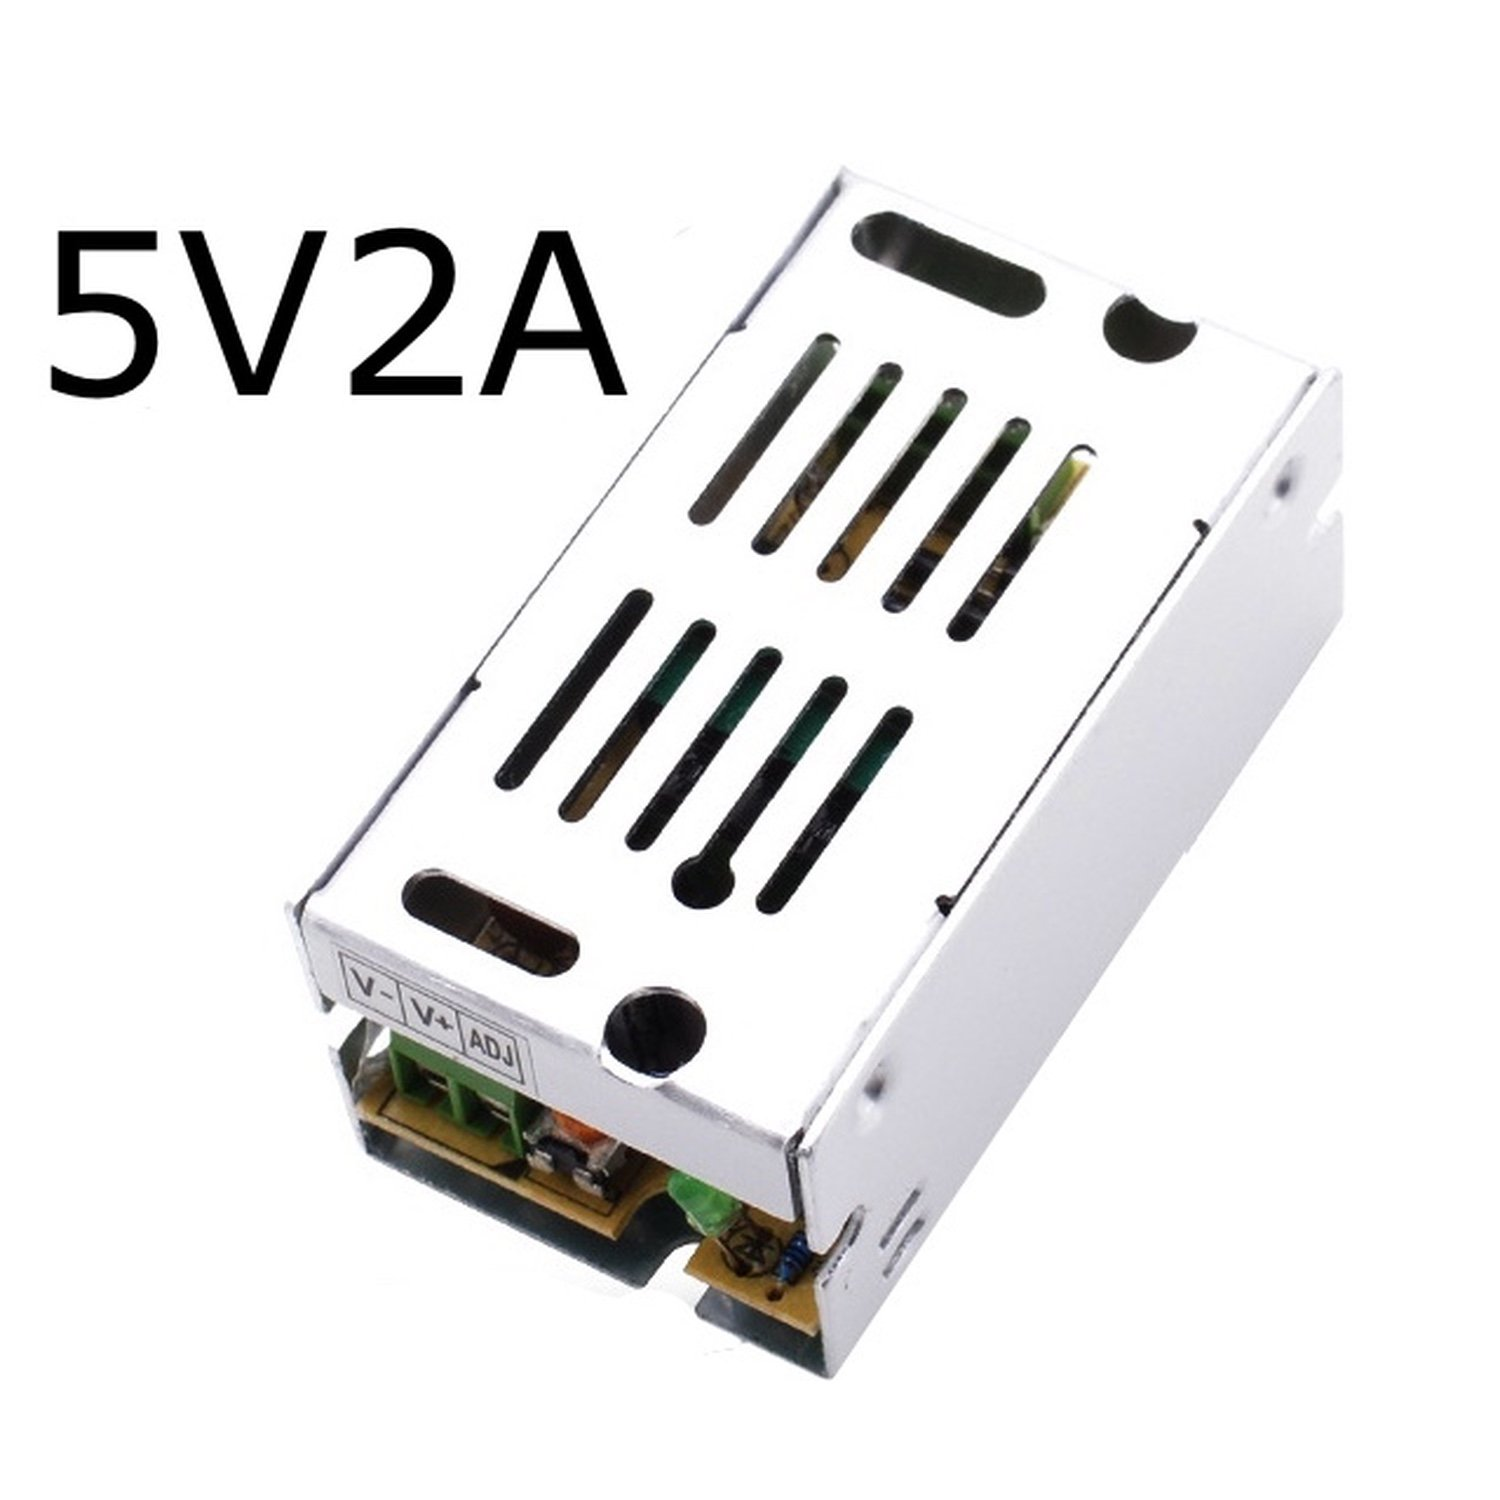 5v 2A Dc Universal Regulated Switching Power Supply 10w for CCTV, Radius, Computer Project, Led jrled 10w 200lm 465nm blue light led emitter w power supply driver board